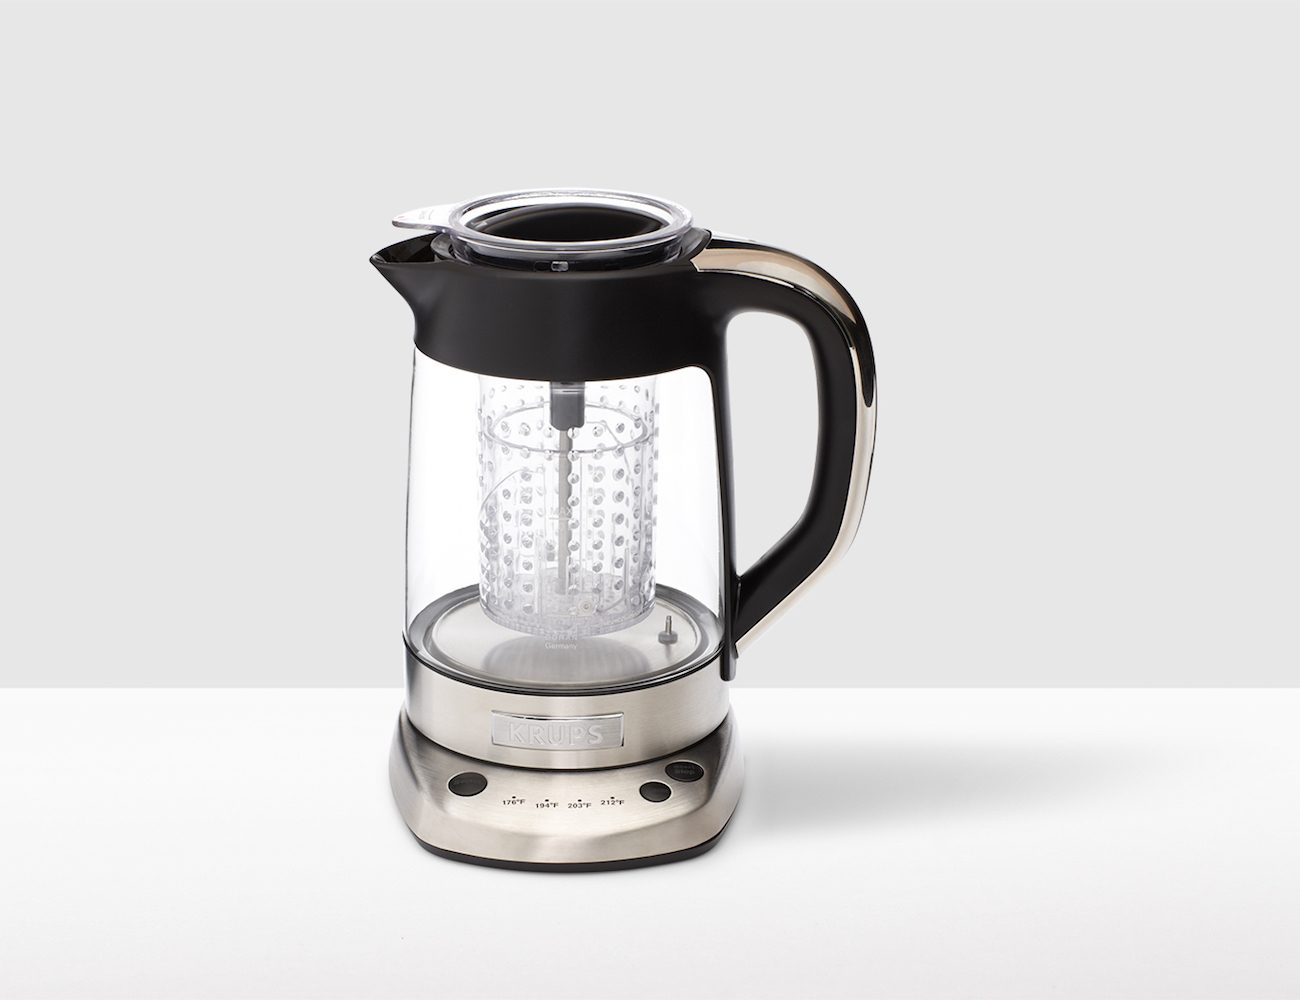 Tea Kettle With Strainer Krups Electric Glass Kettle Tea Infuser Gadget Flow